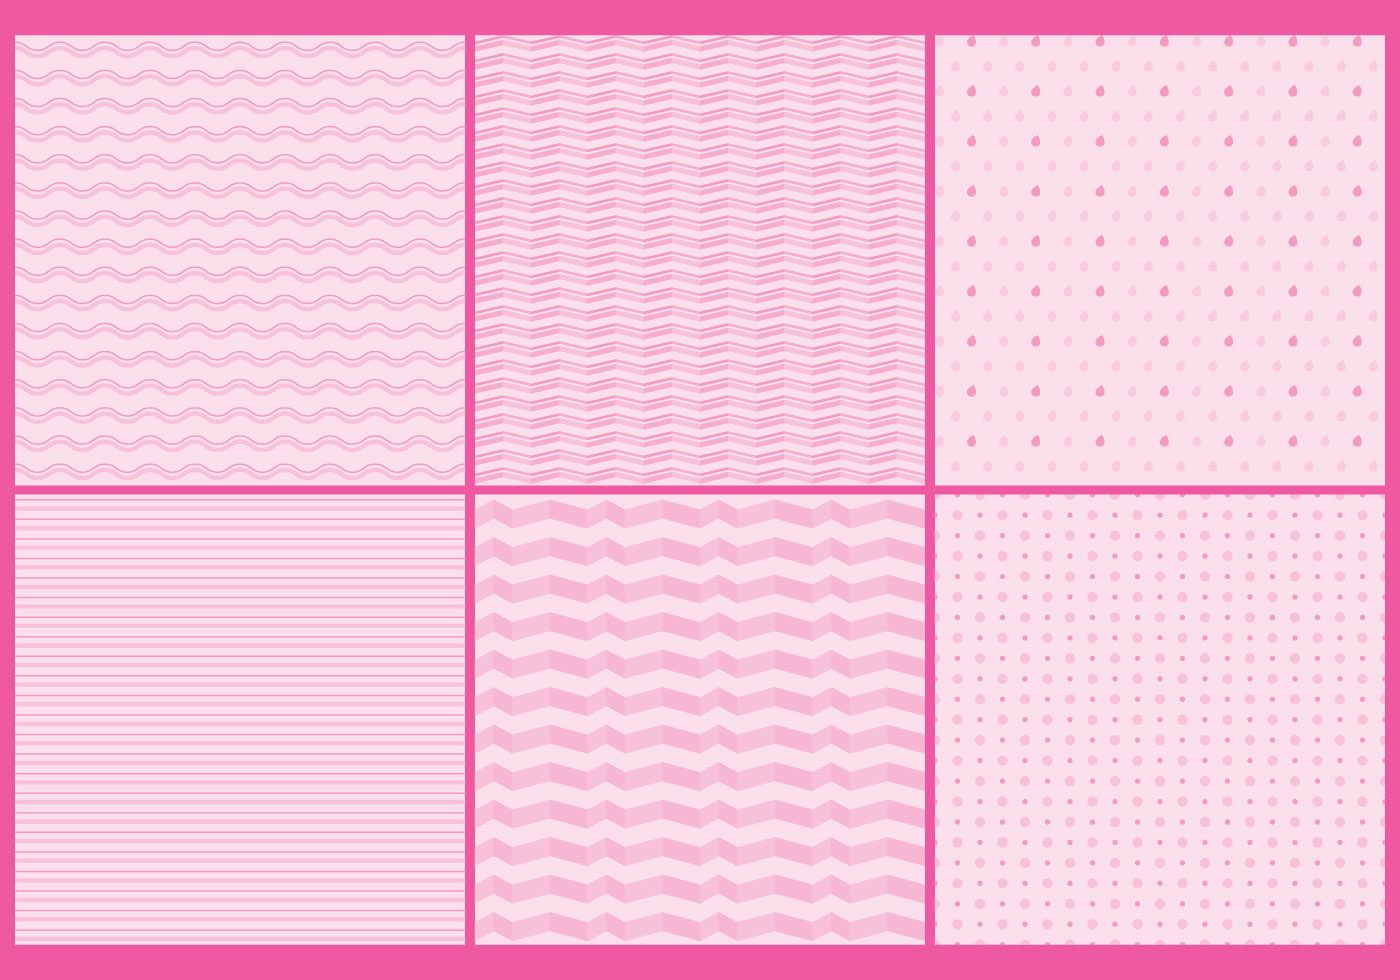 Sweet Cute Baby Girl Wallpaper Pinky Girly Patterns Download Free Vector Art Stock